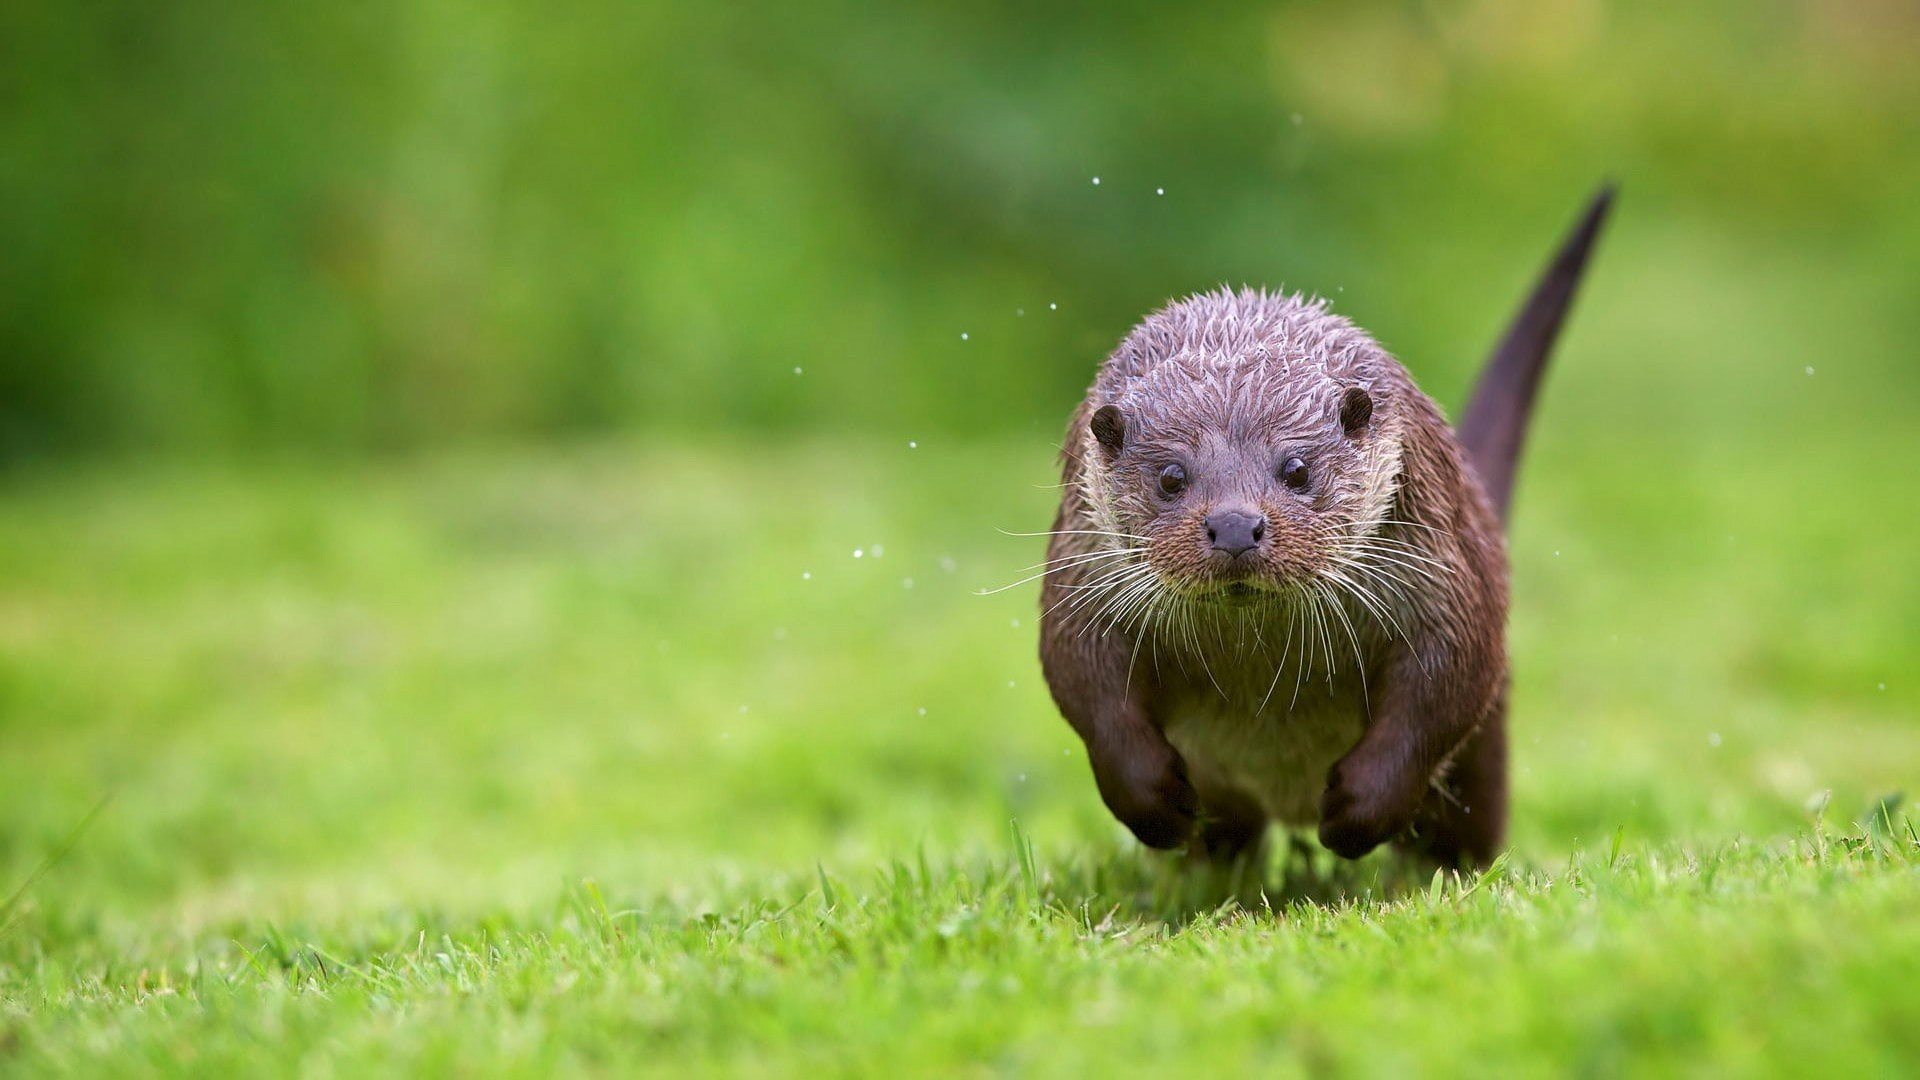 Otter Hd Wallpapers 7wallpapers Net